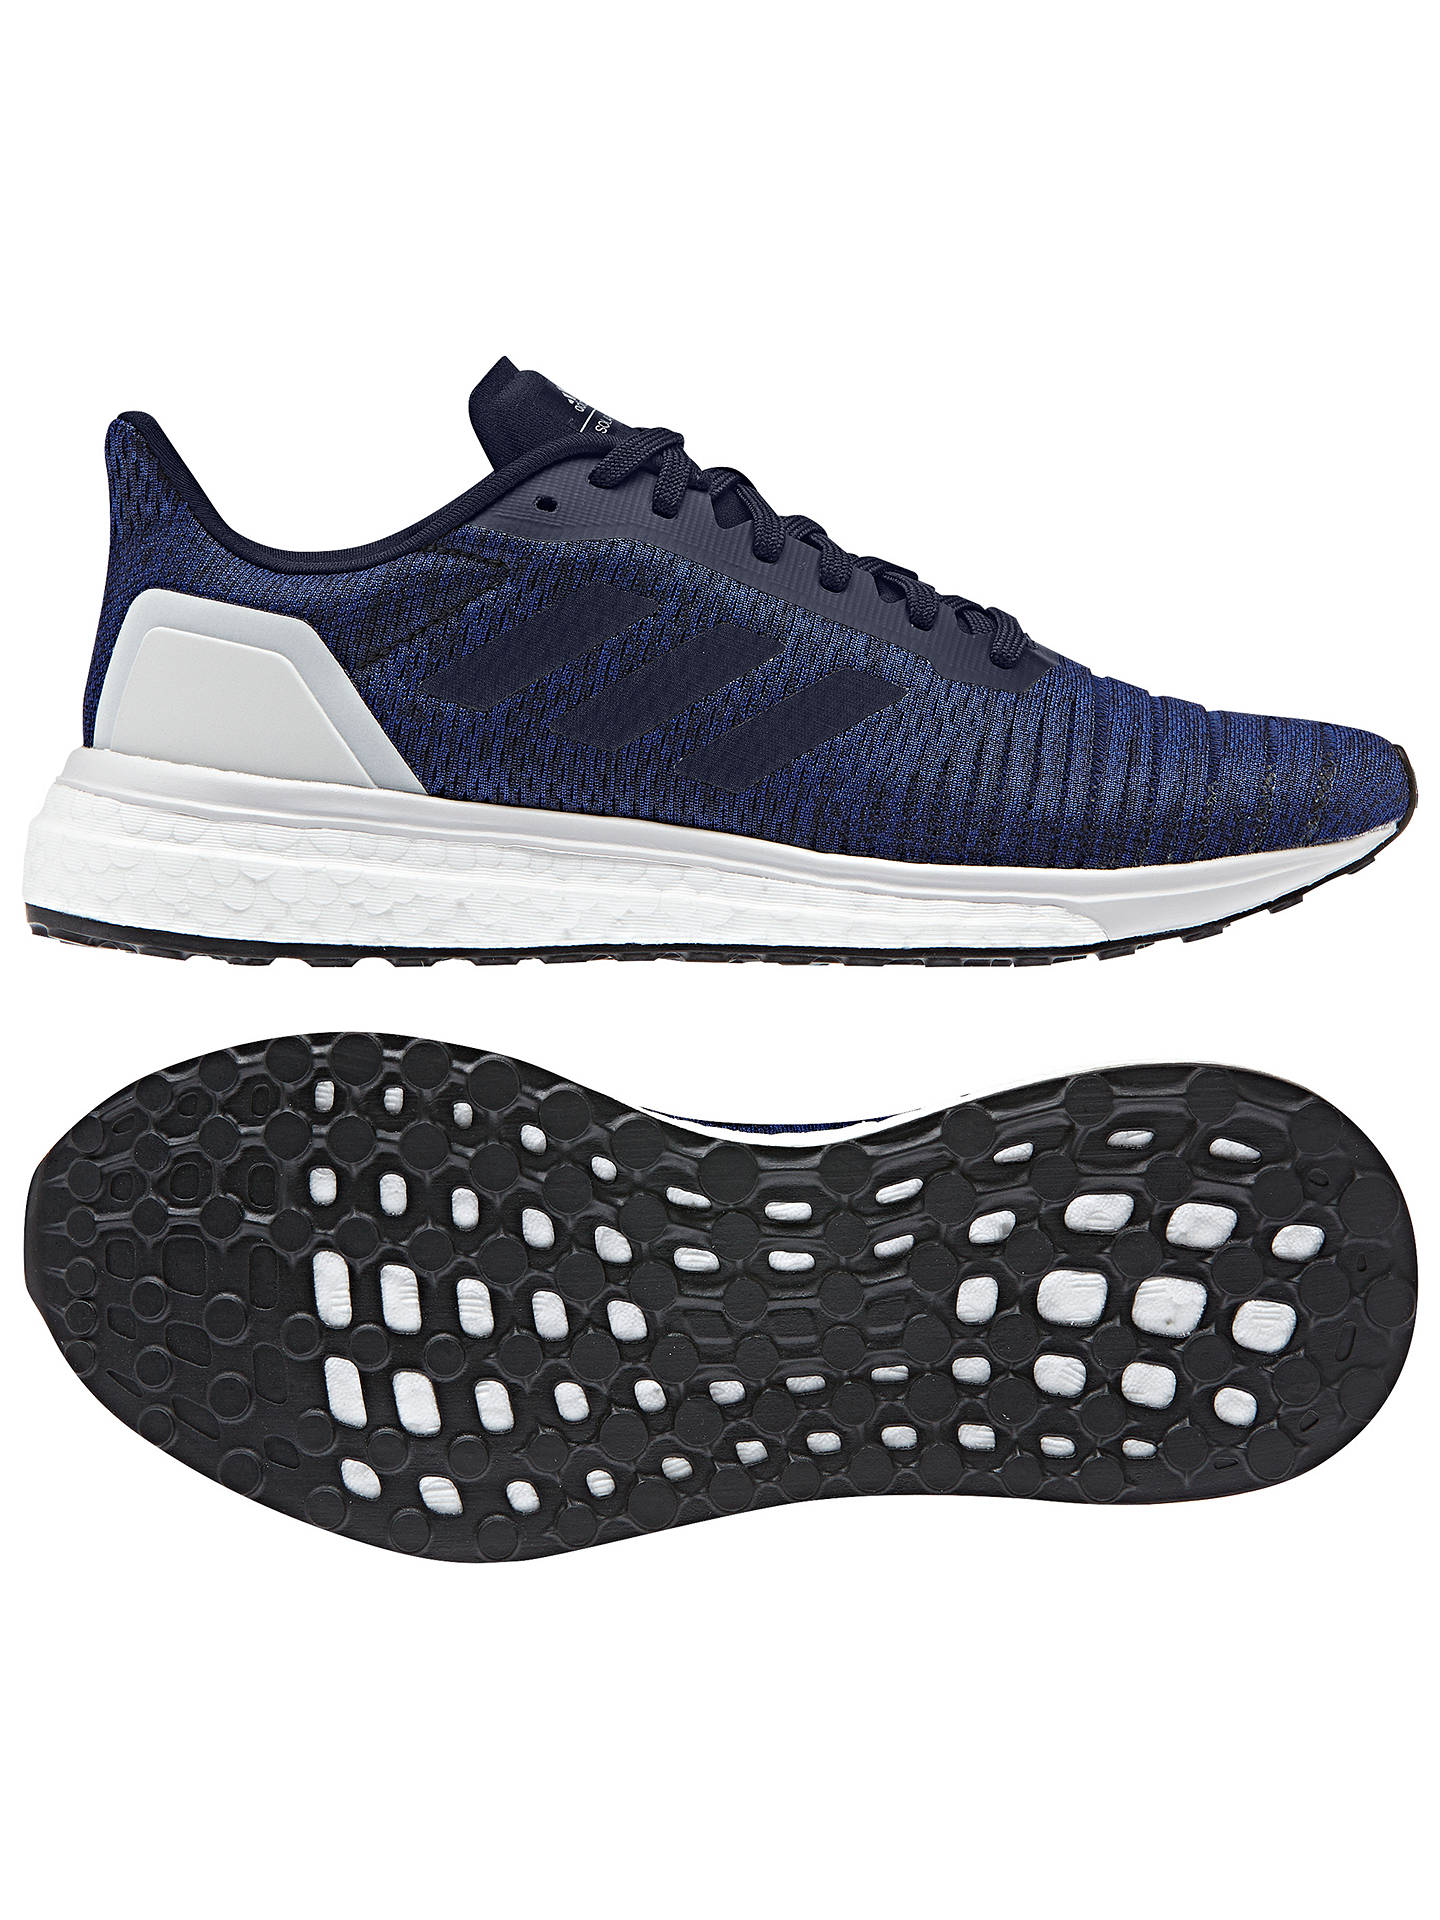 Buy adidas Solar Drive Women's Running Shoes, Mystery Ink, 4 Online at johnlewis.com